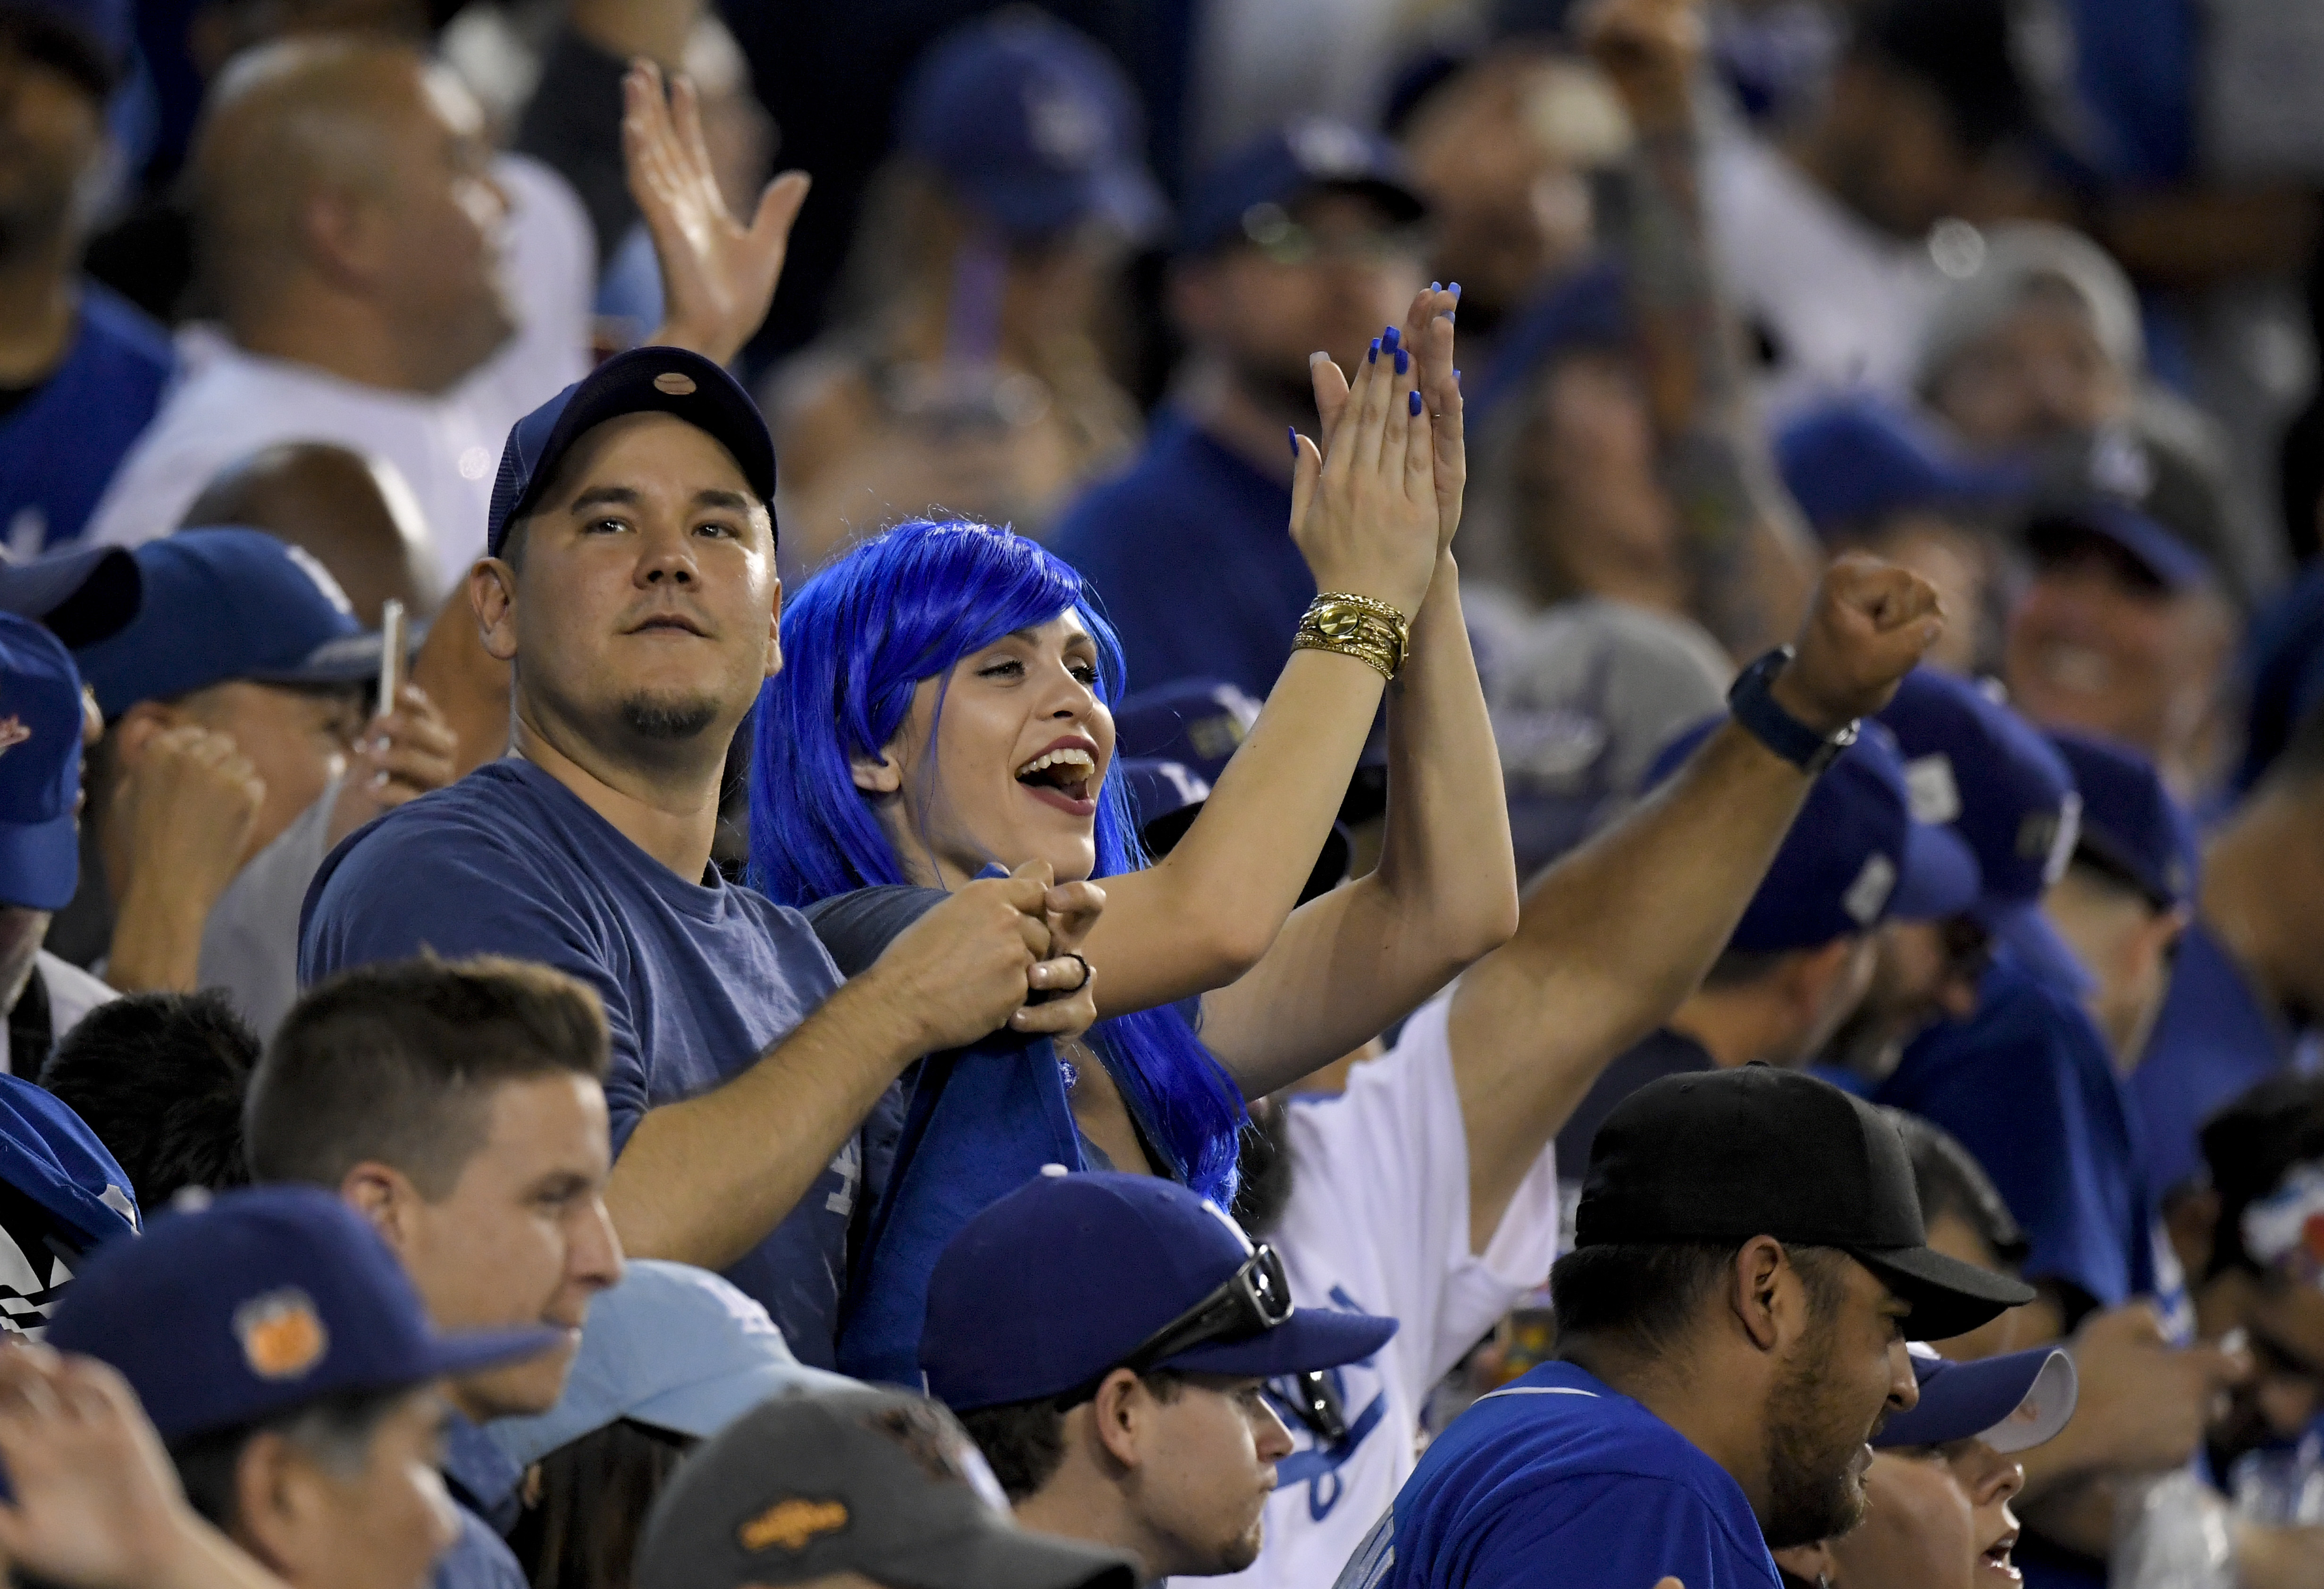 <div class='meta'><div class='origin-logo' data-origin='AP'></div><span class='caption-text' data-credit='(AP Photo/Mark J. Terrill)'>Fans react after the Dodgers win World Series Game 1 against the Houston Astros Tuesday, Oct. 24, 2017, in Los Angeles. The Dodgers won 3-1 to take a 1-0 lead in the series.</span></div>